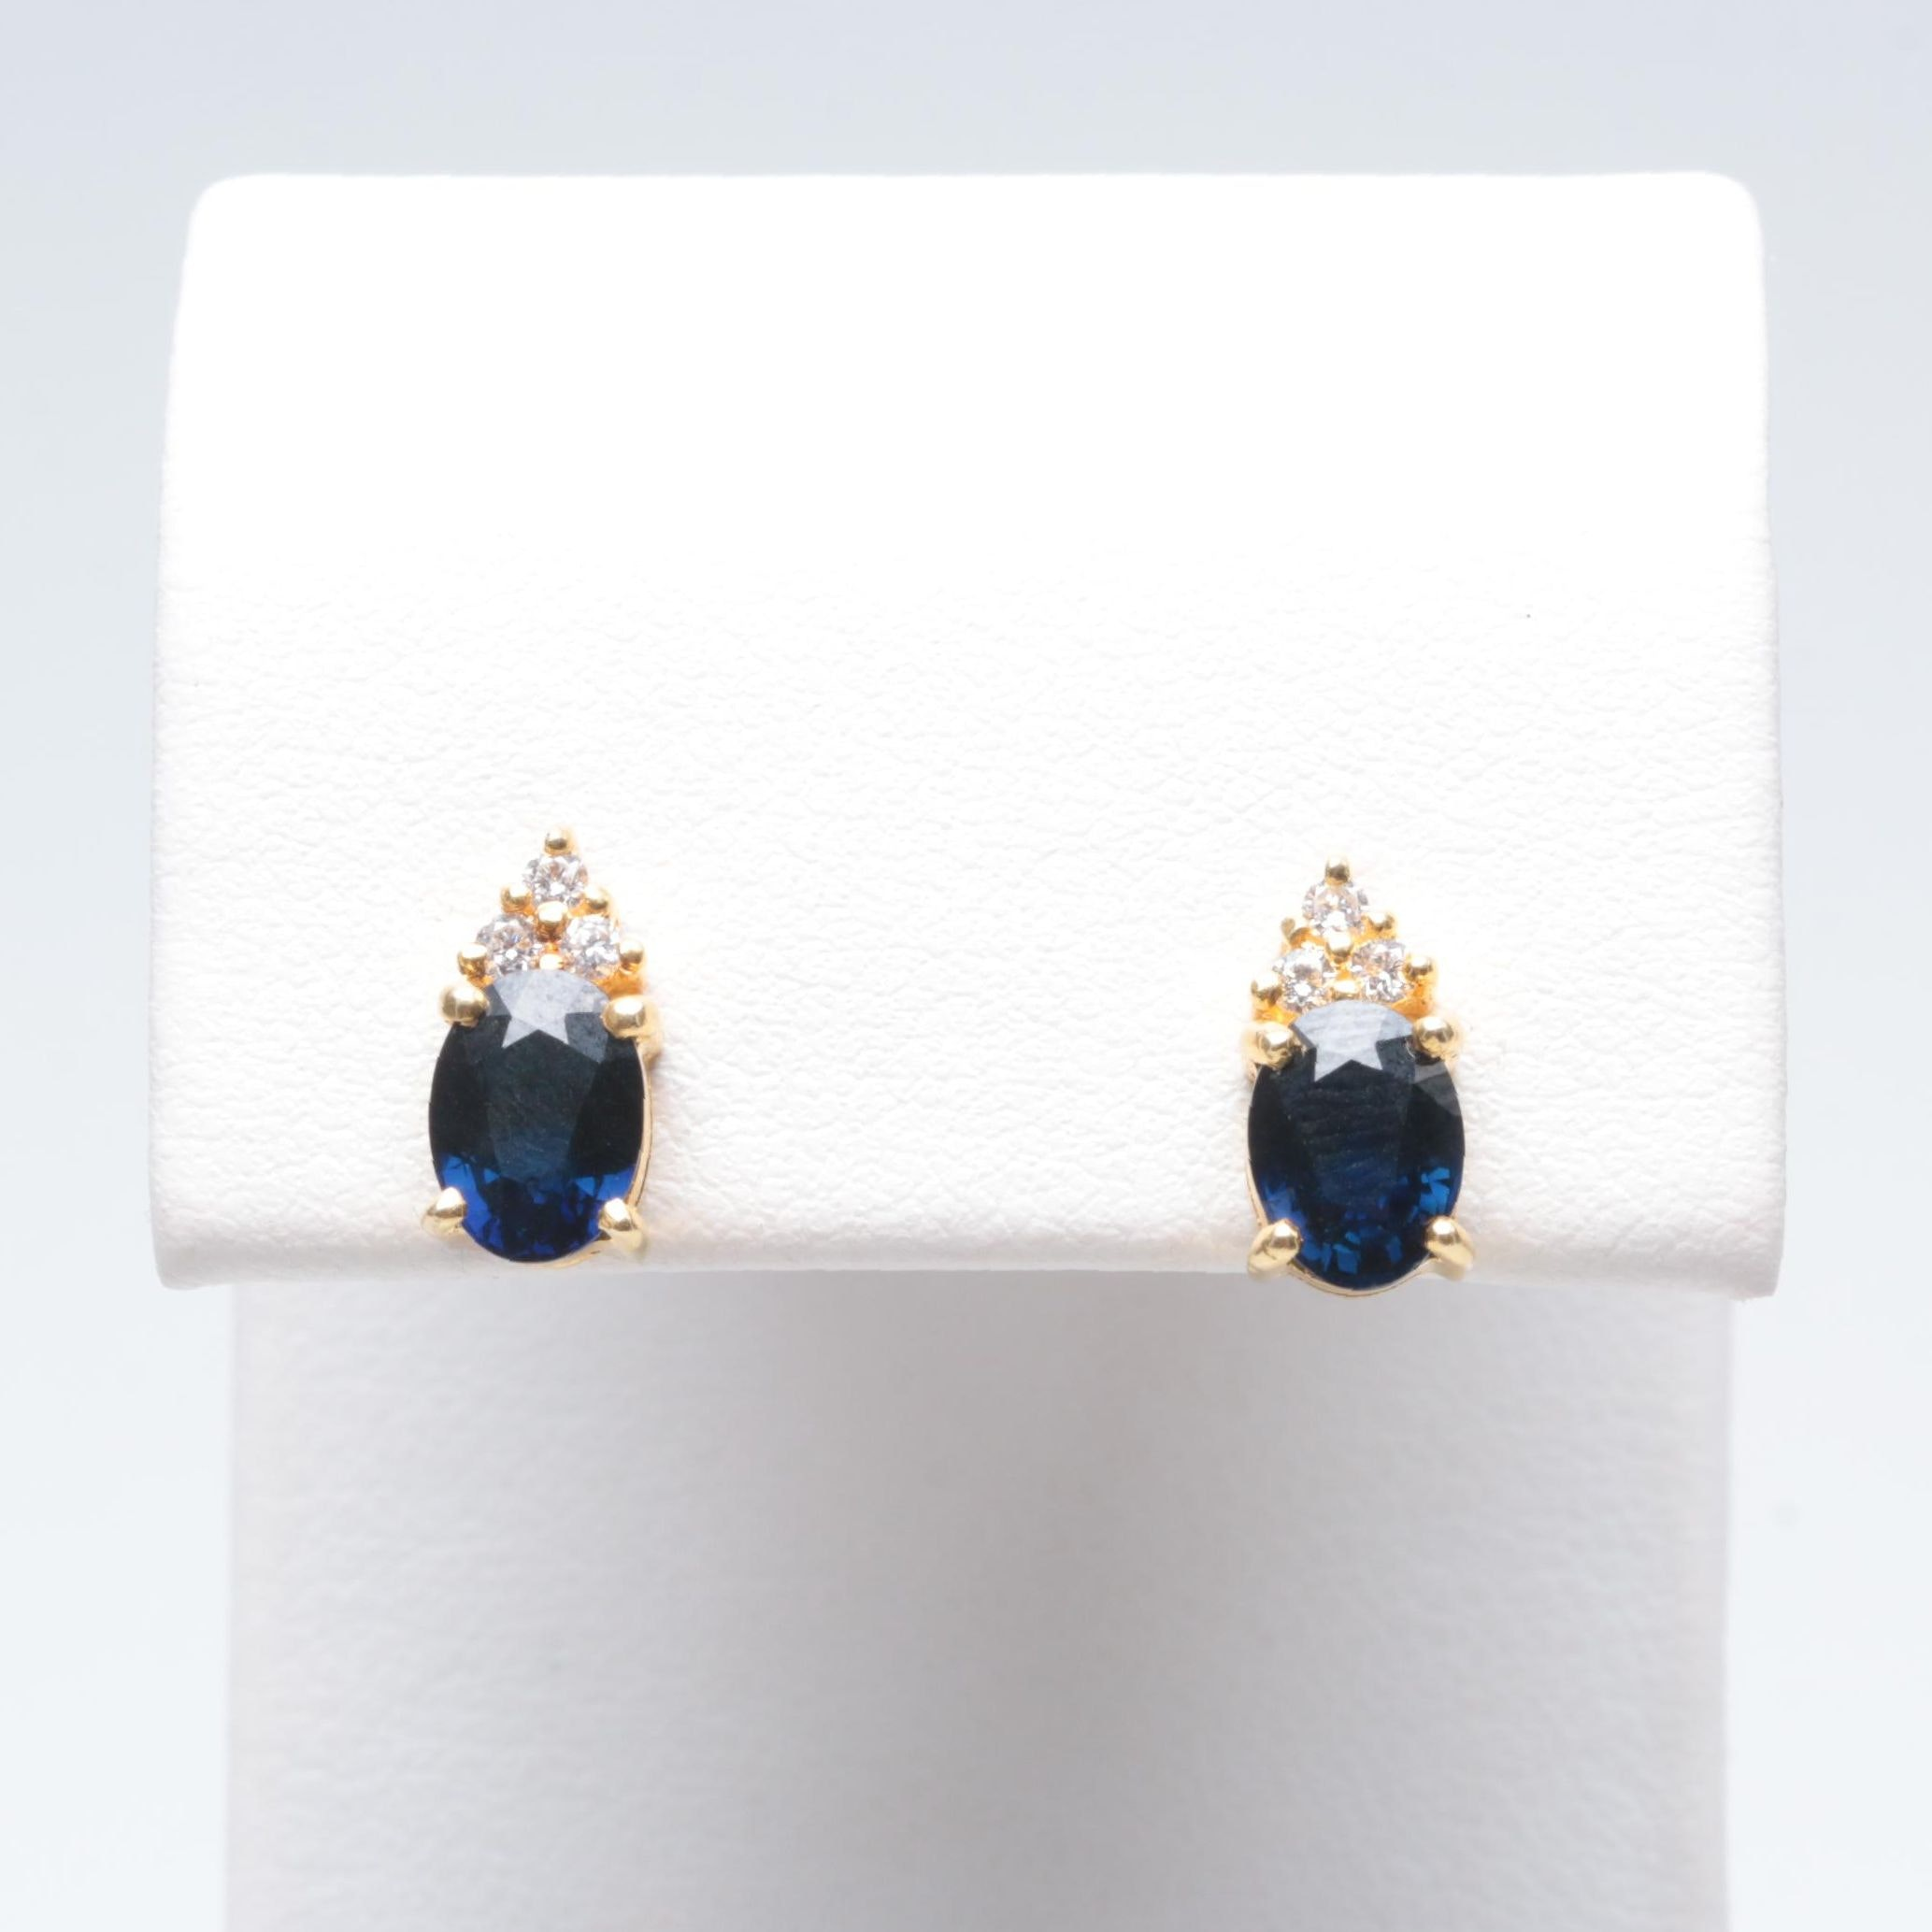 18K and 14K Yellow Gold Sapphire and Diamond Earrings